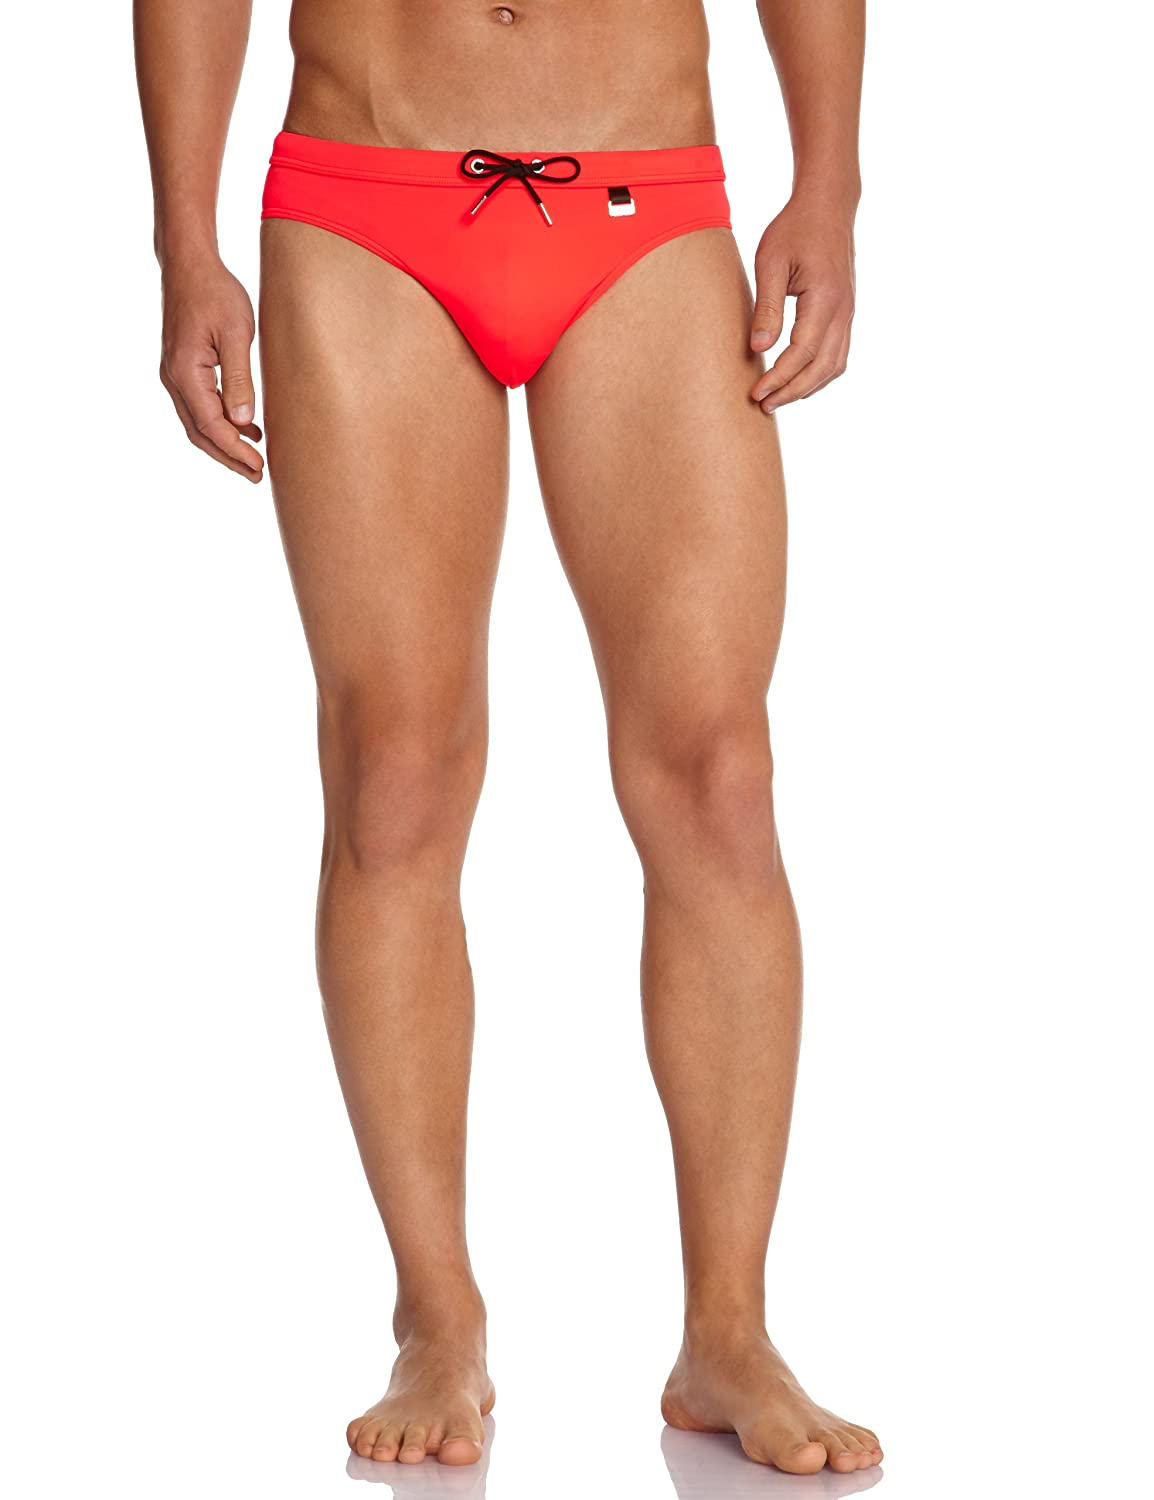 Hom Men's Marine Chic Mini Briefs Swim Trunks 10119956